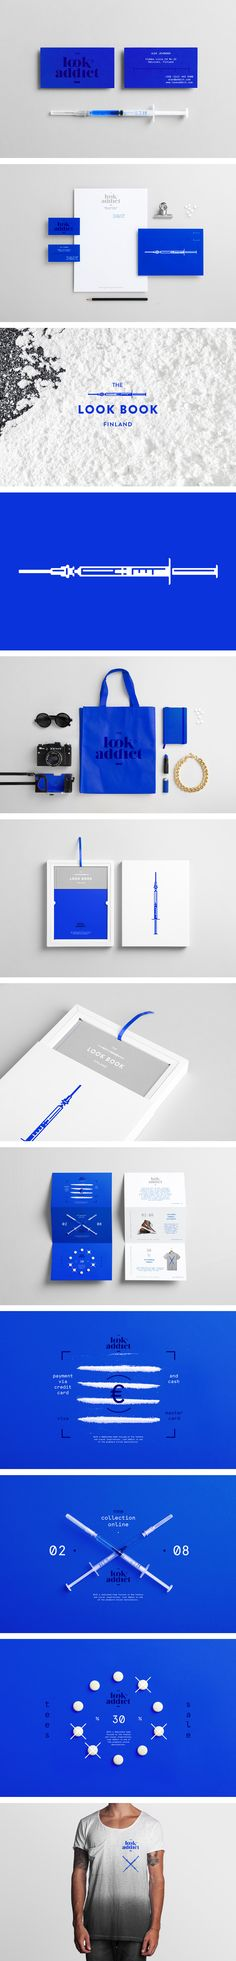 Look Addict - #branding #brands #identity #design